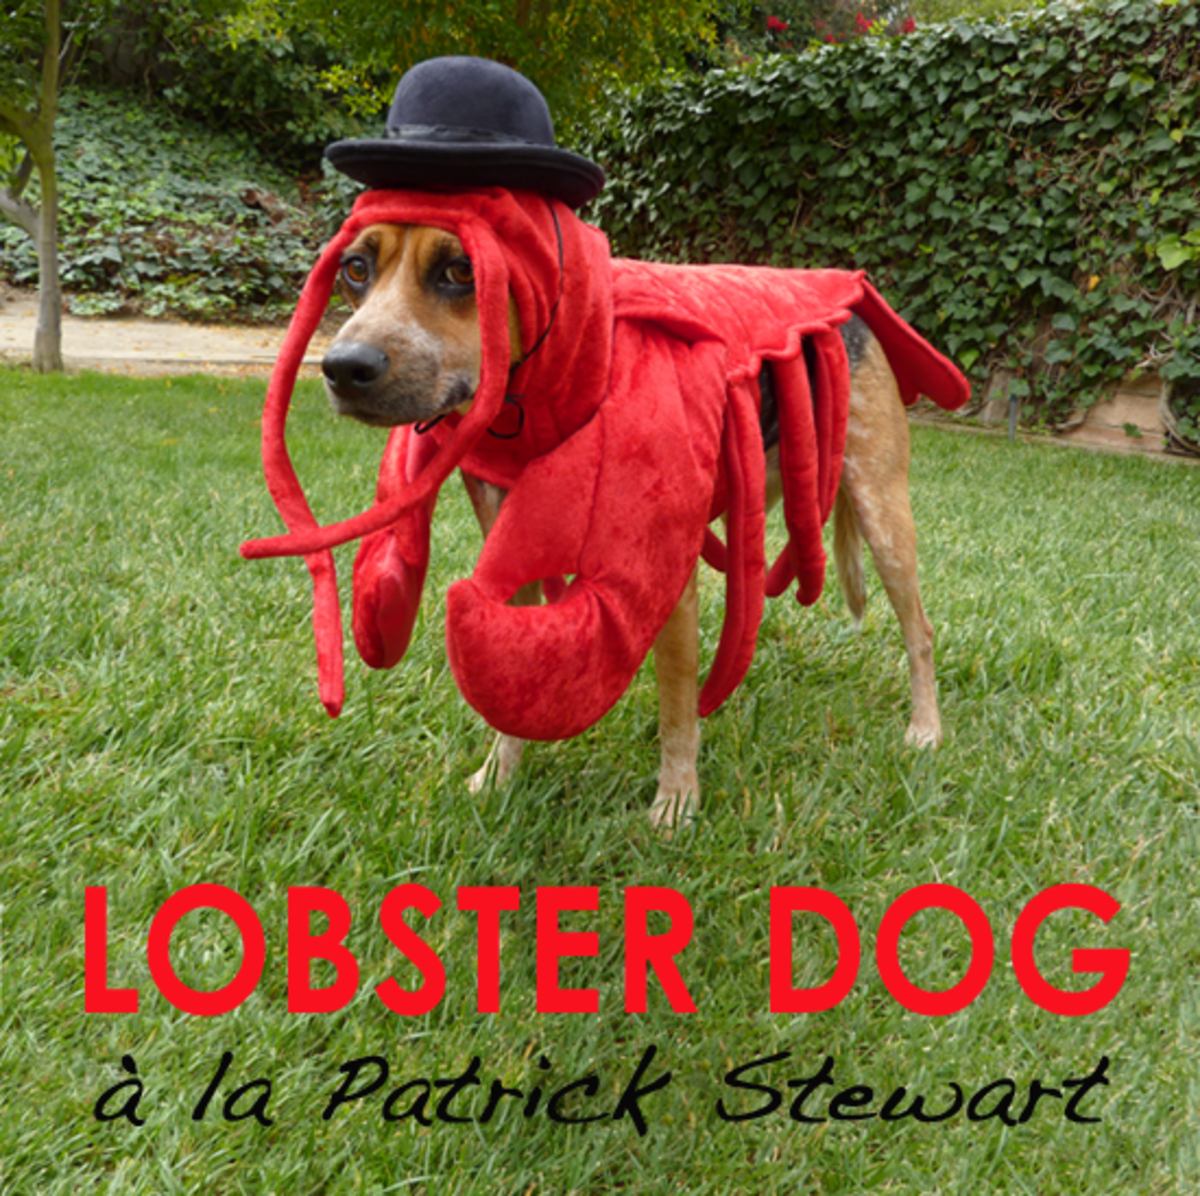 How To Make a Lobster Costume for Your Dog